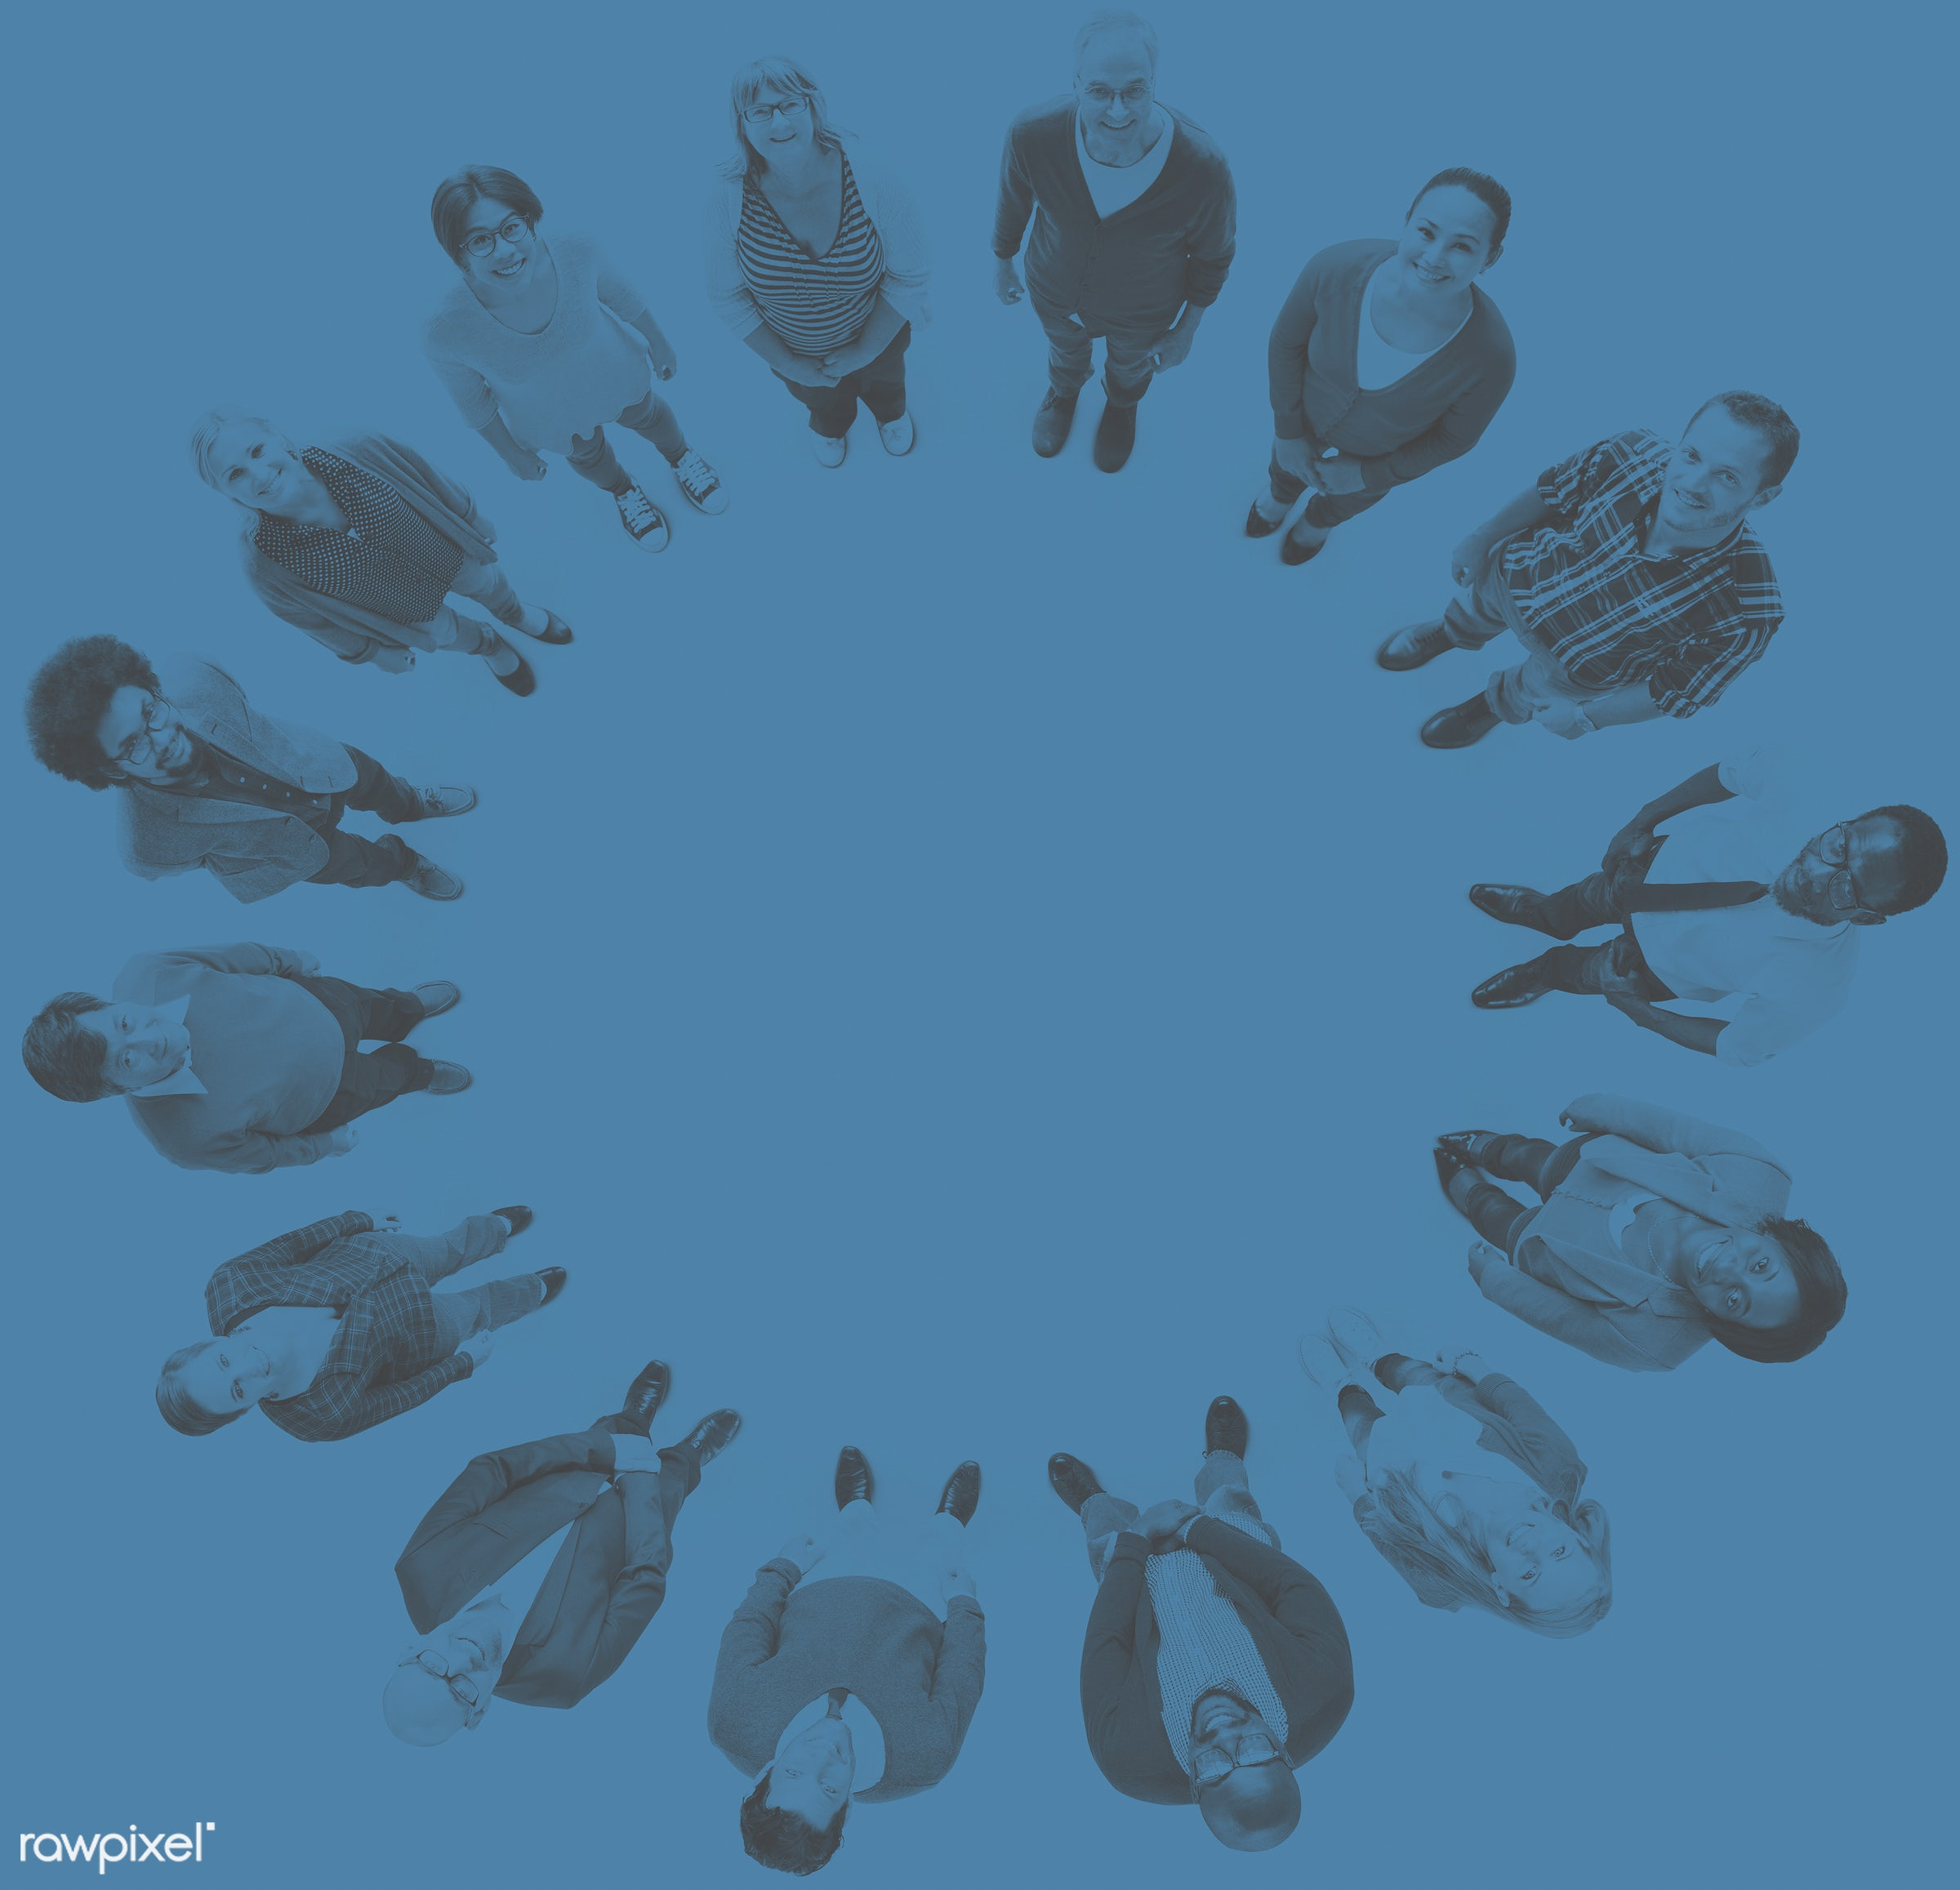 aerial view, african descent, asian ethnicity, blank, blue, casual, circle, colorful, communication, community, connection,...